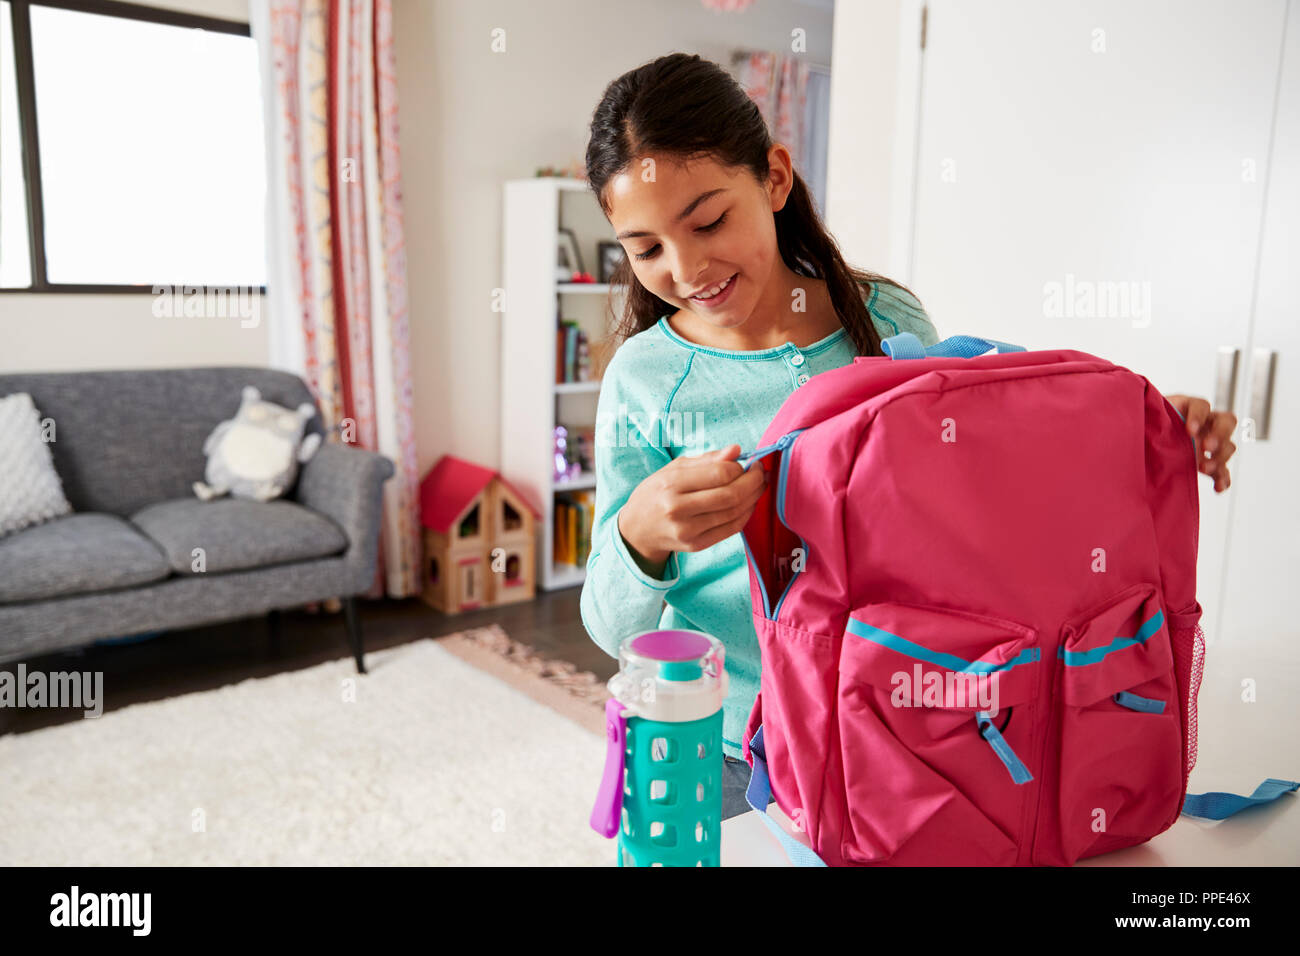 Young Girl In Bedroom Zipping Up Bag Ready For School - Stock Image